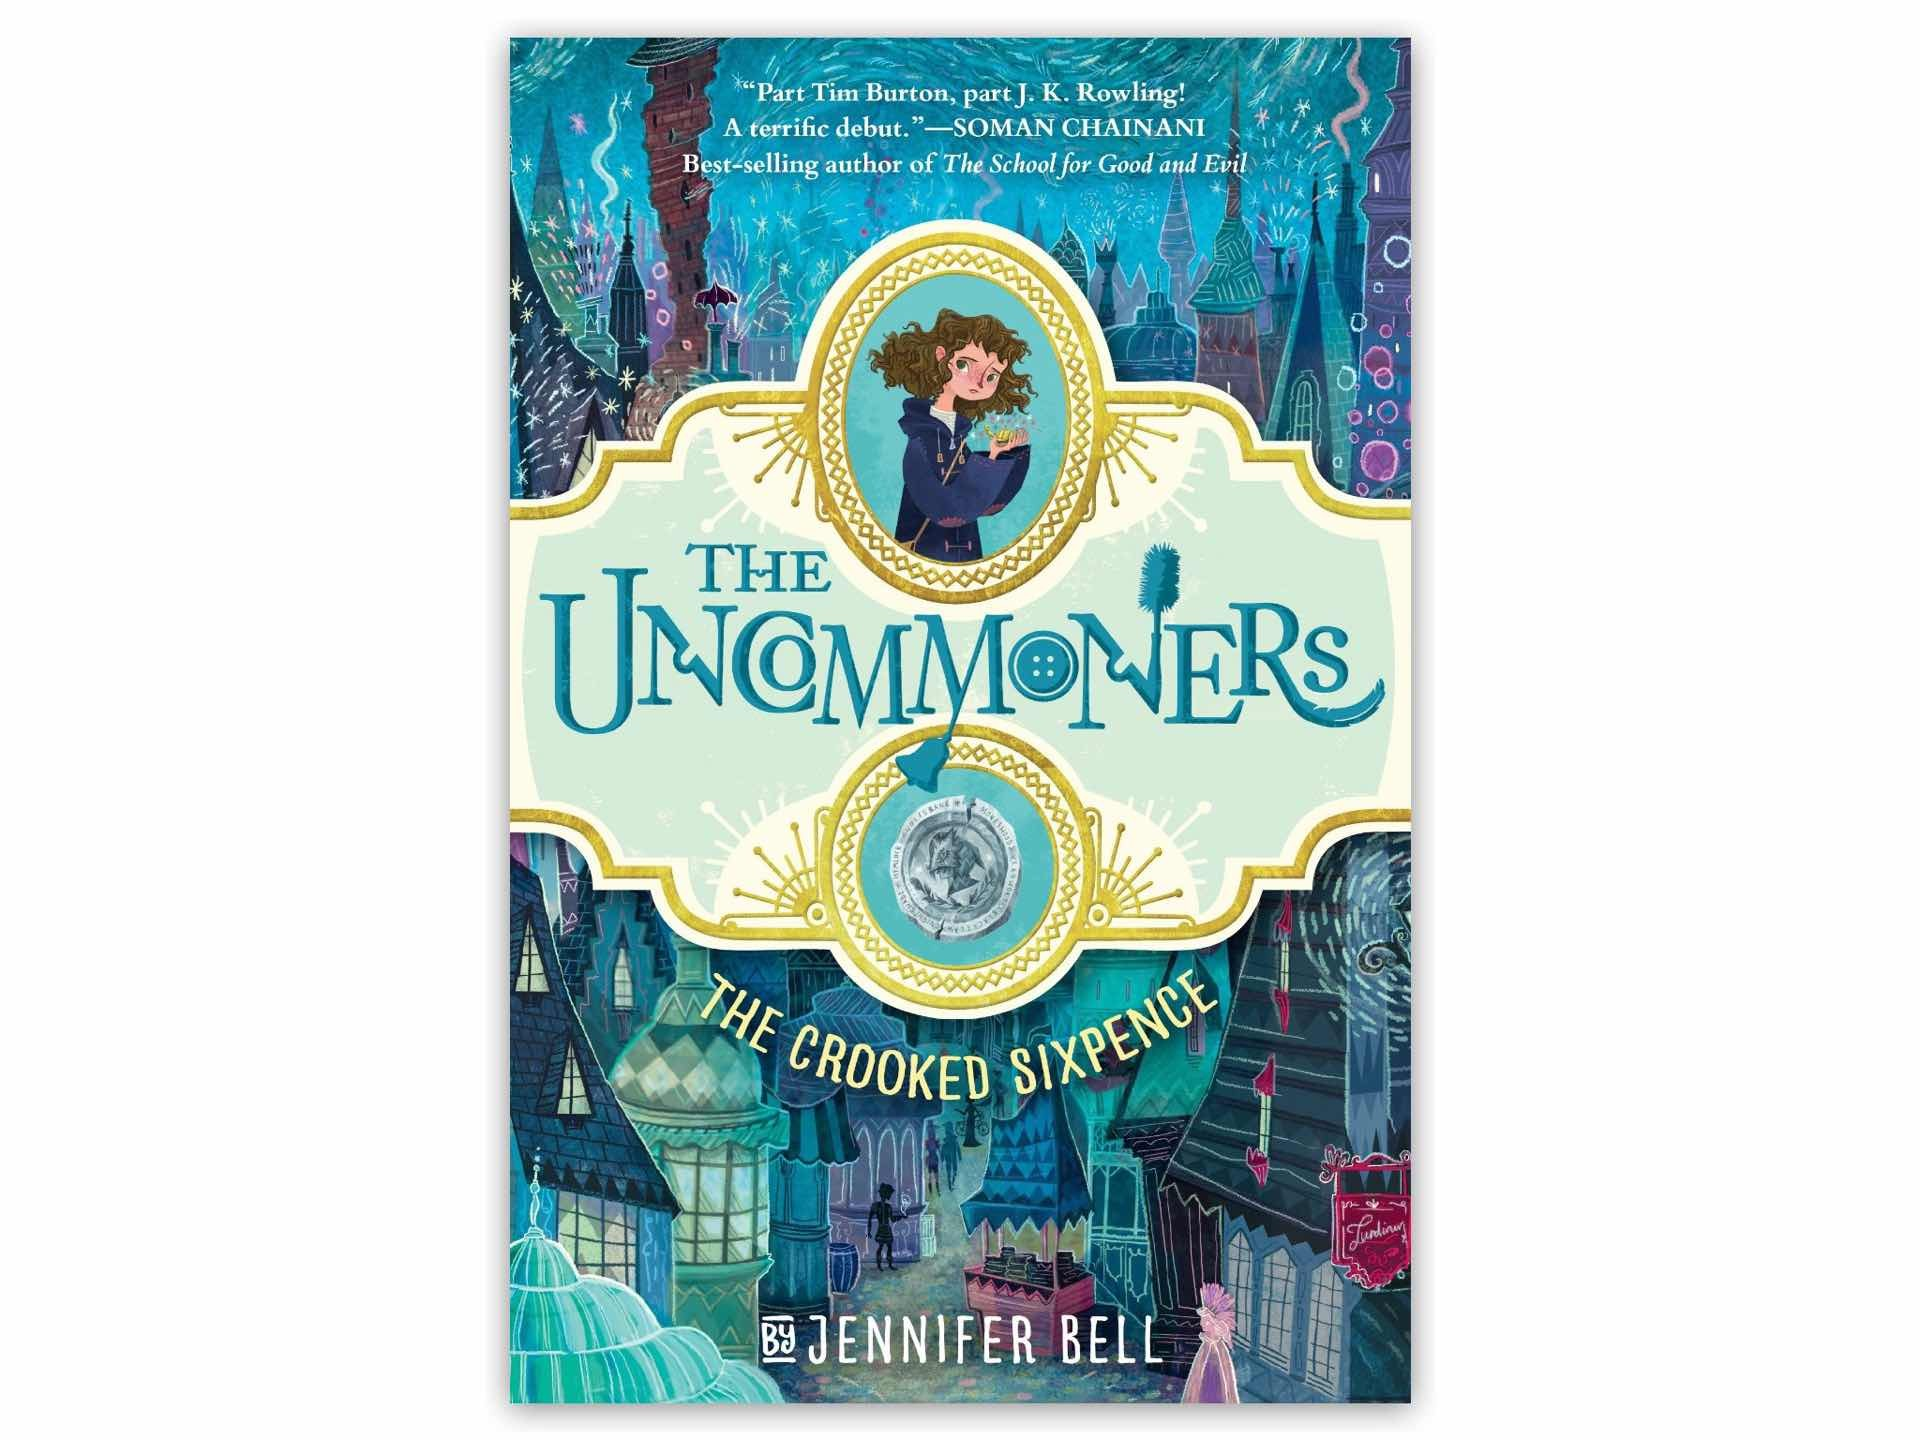 The Uncommoners #1: The Crooked Sixpence by Jennifer Bell.